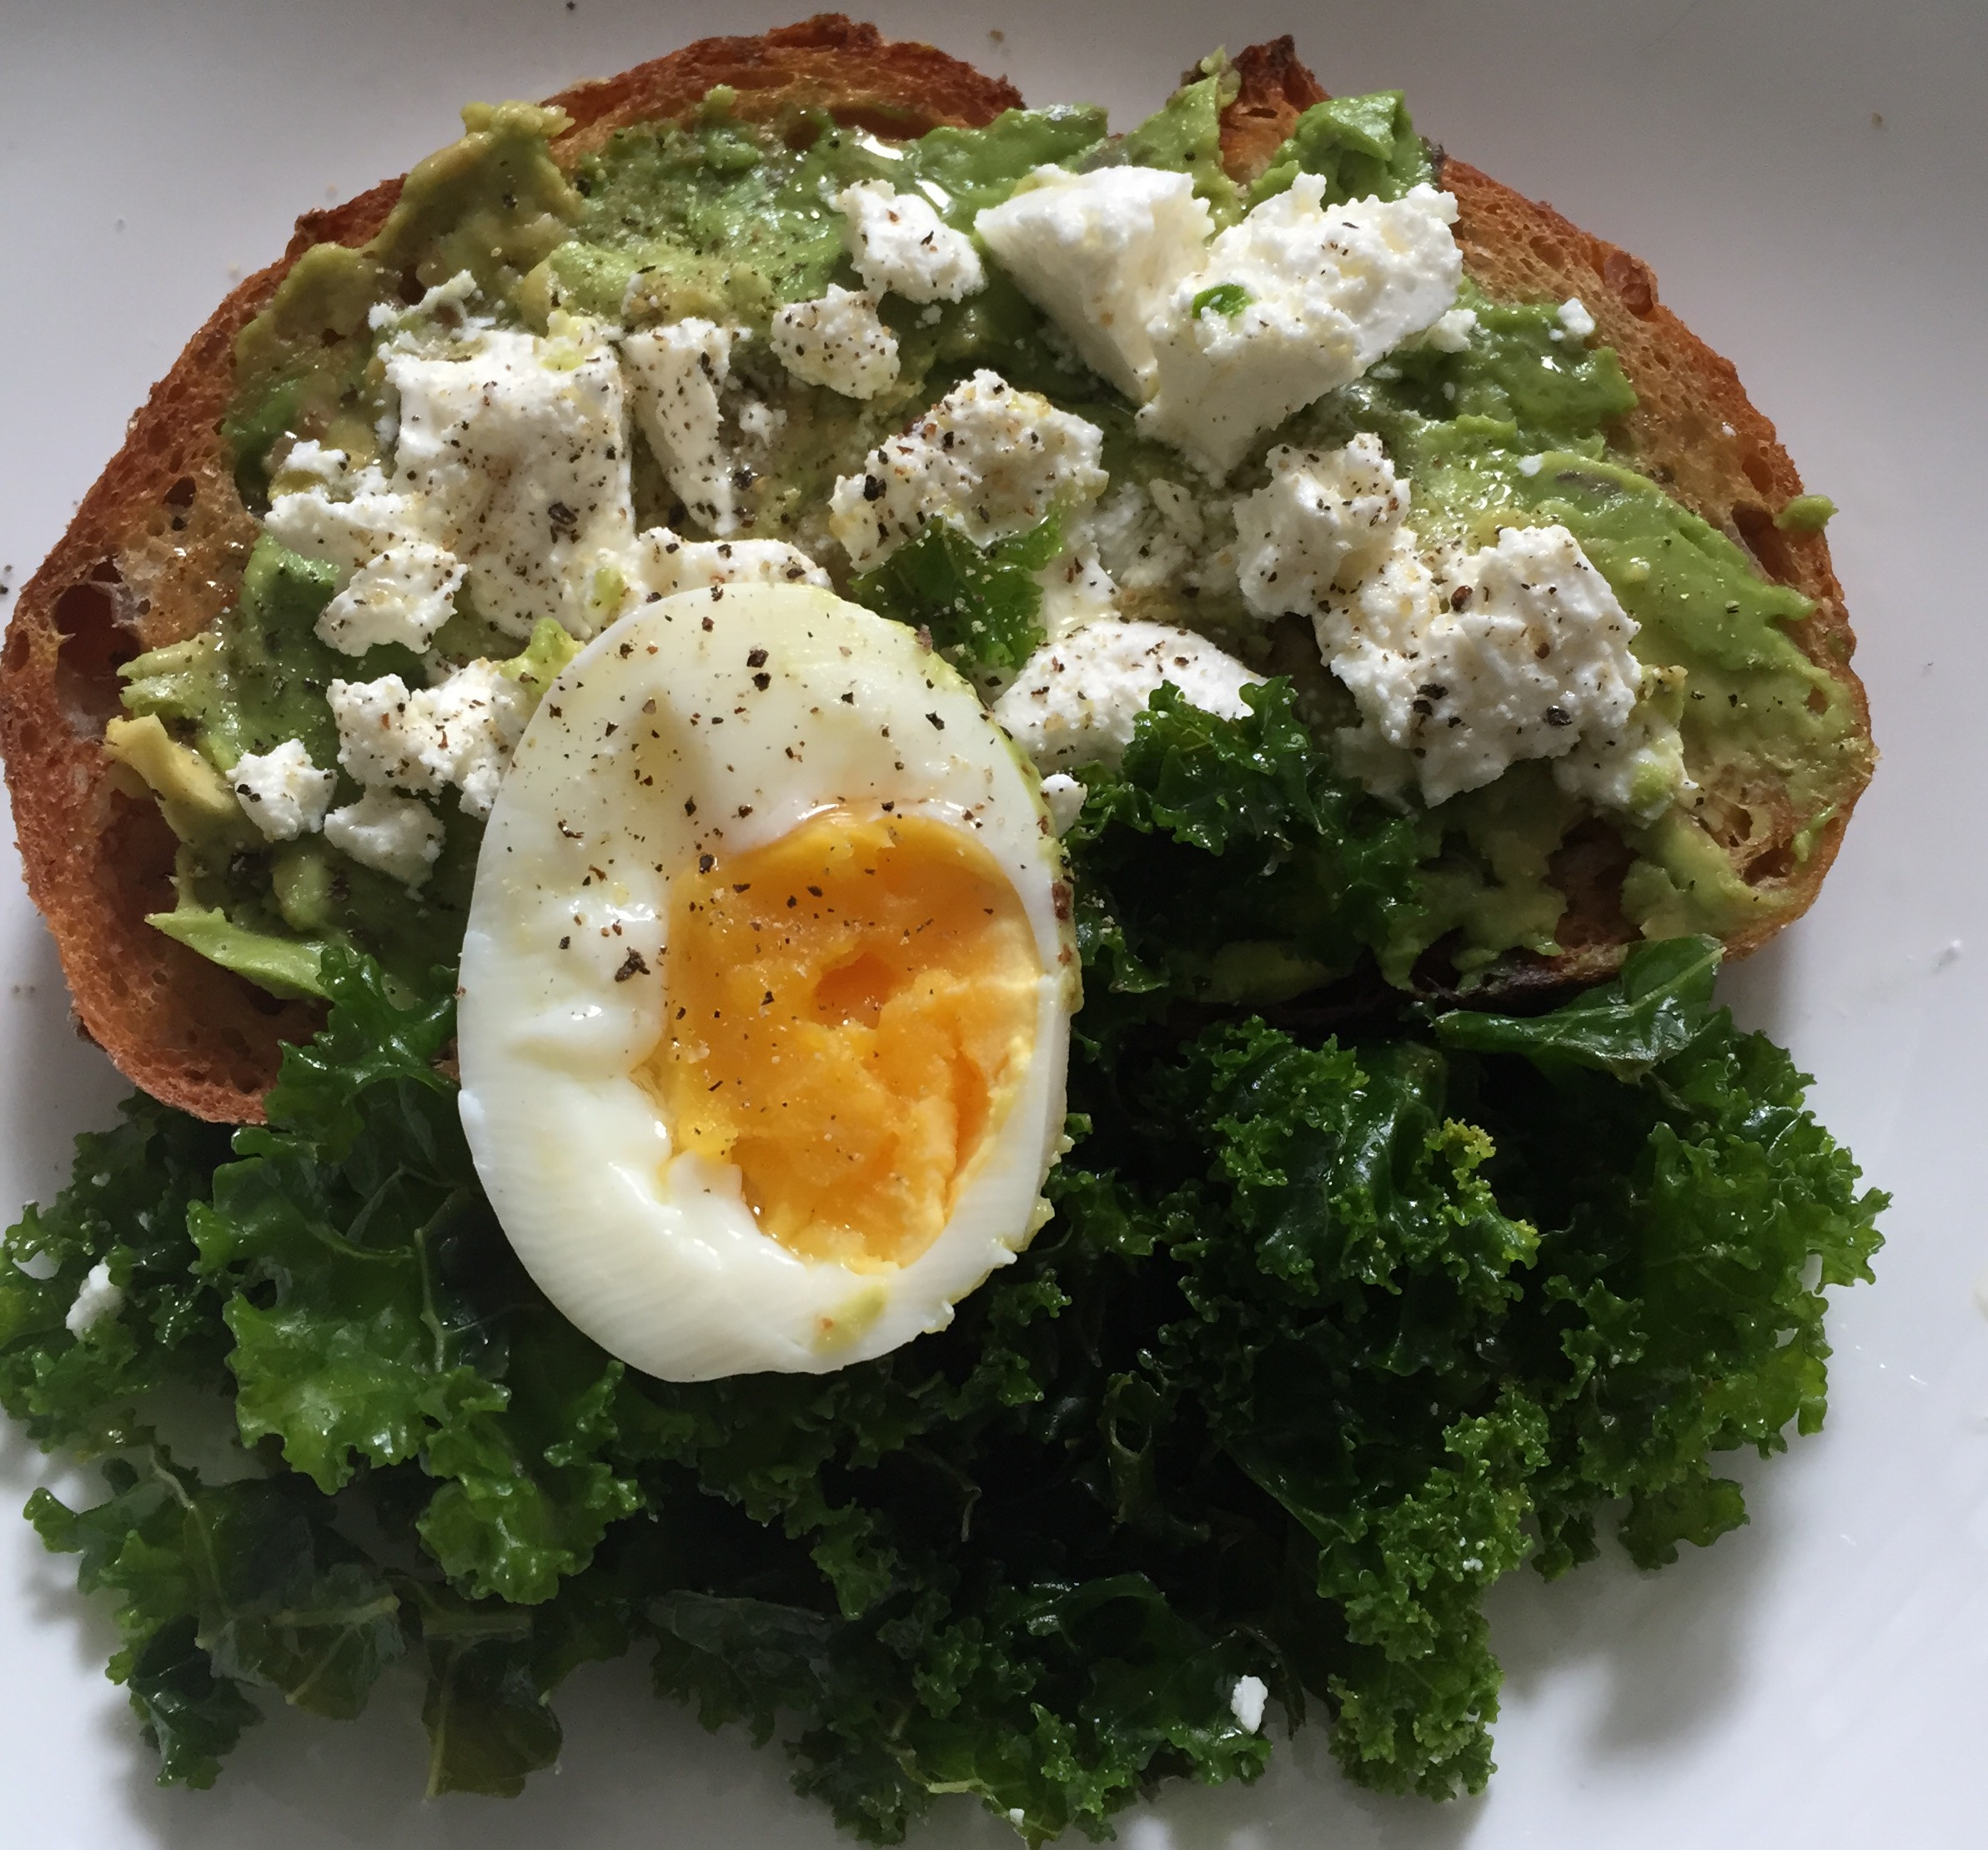 My favourite home made lunch - Avocado, Persian Fetta and lemon kale on sourdough